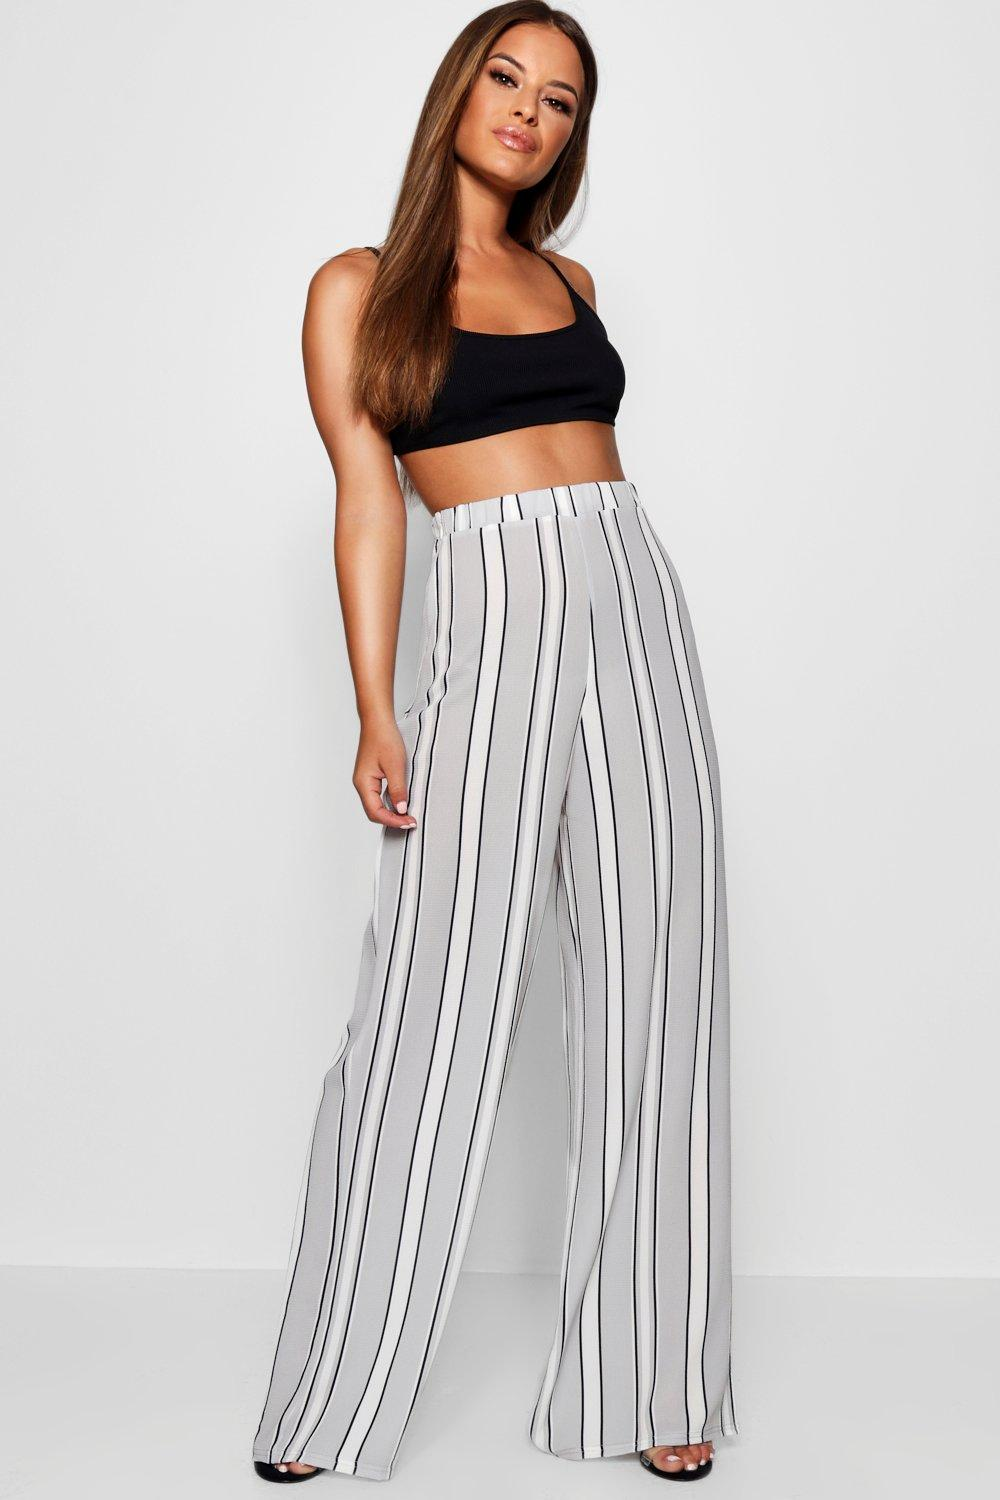 Woven Petite Wide Stripe Leg Trouser grey qxYY5F7n4r